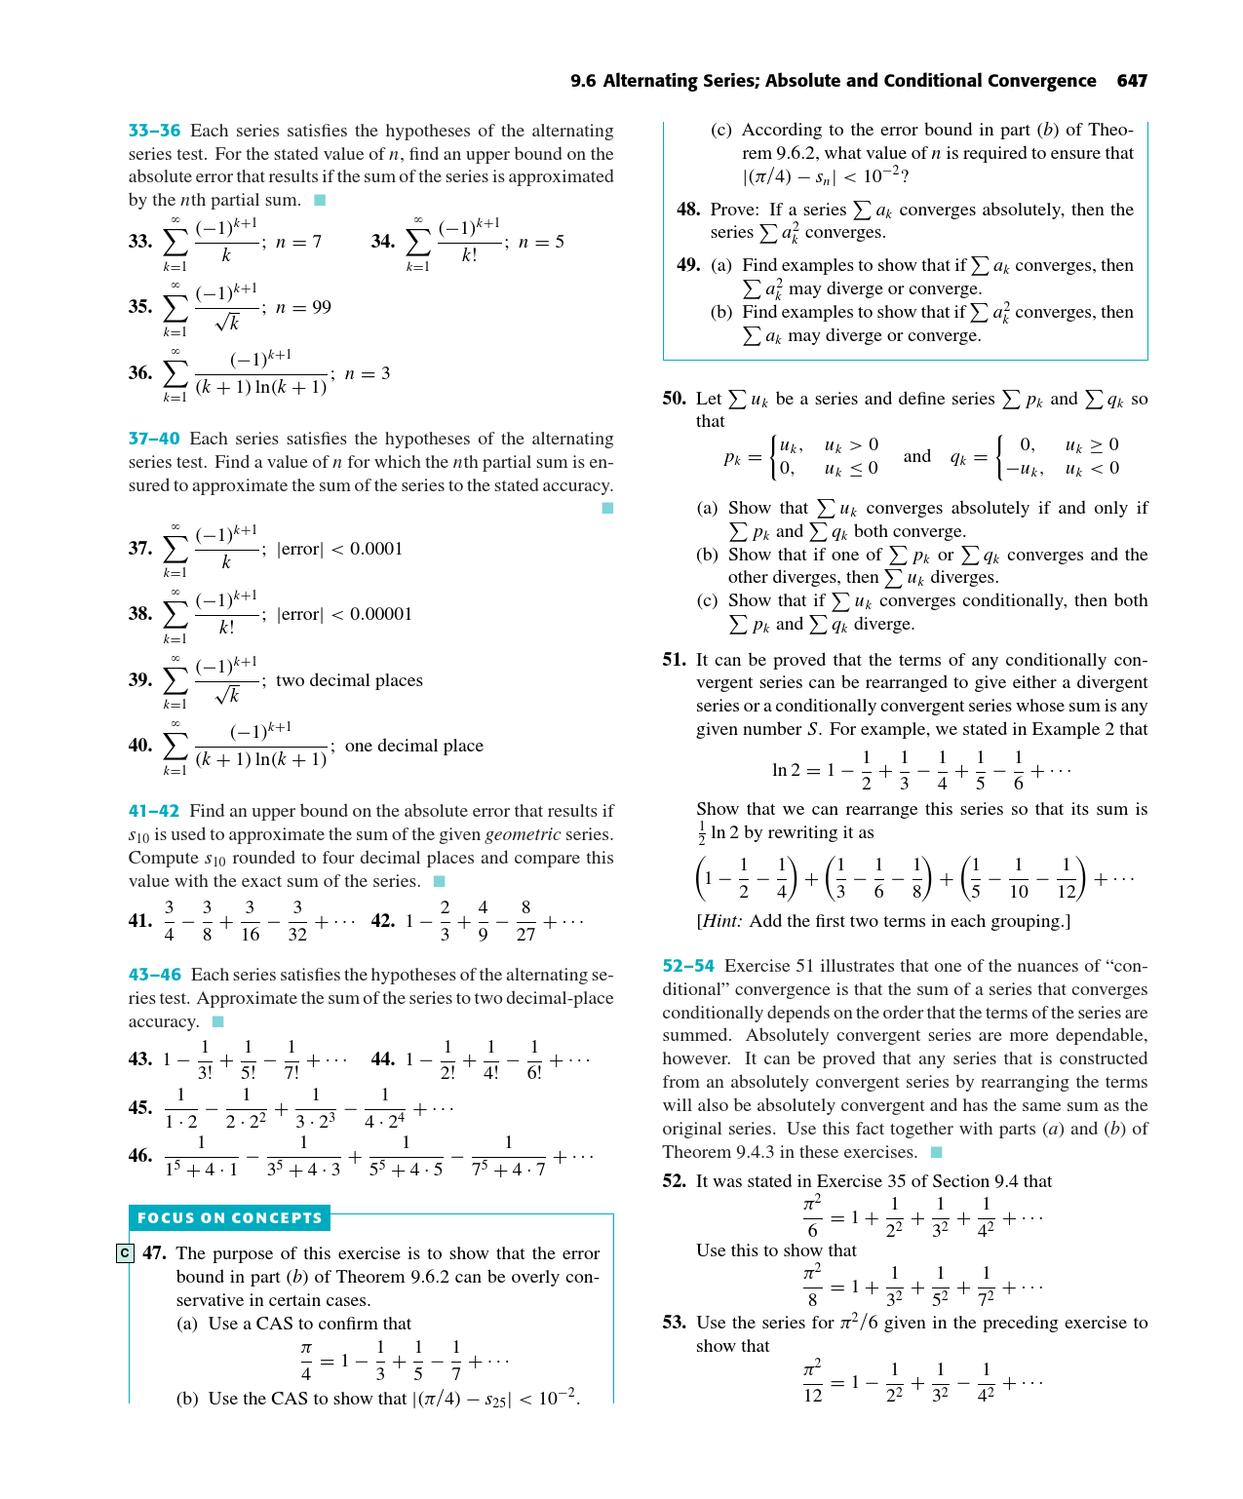 calc 501-1000 by James Bardo - issuu